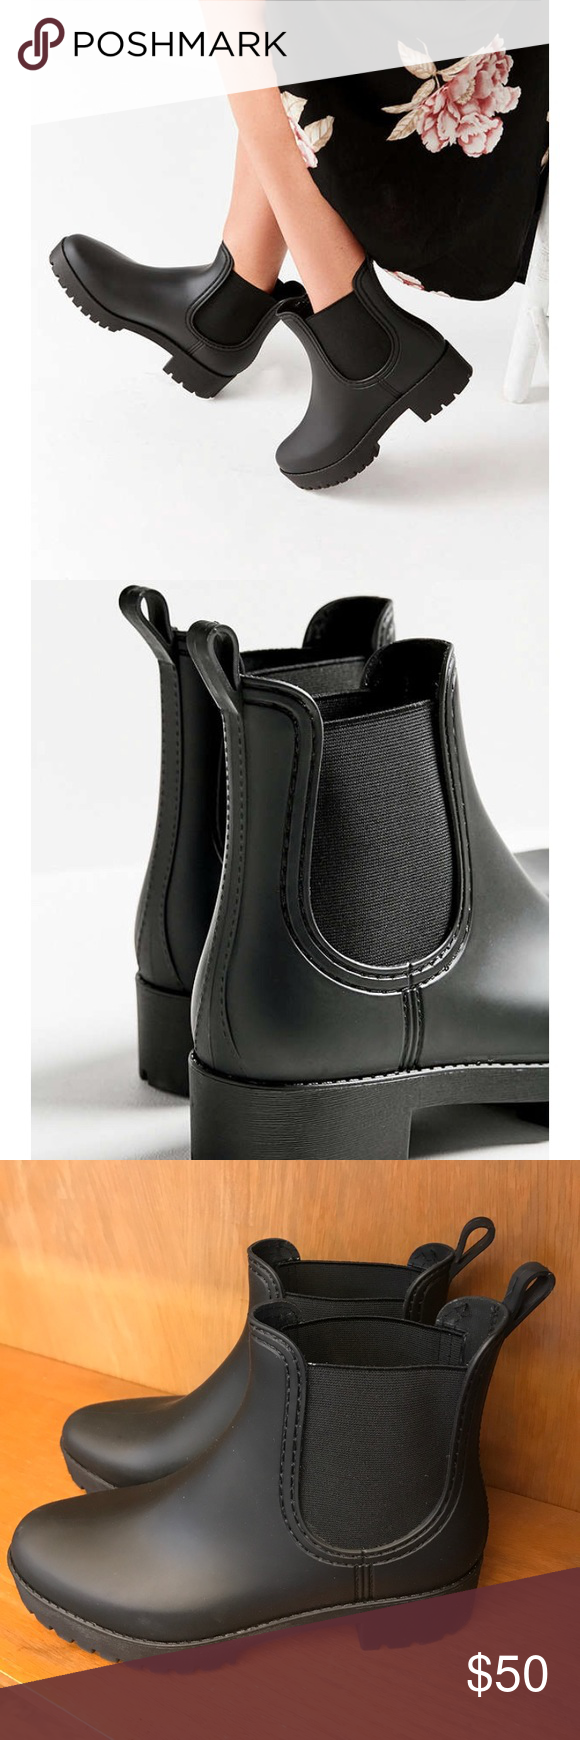 b4aa68a55 Jeffrey Campbell Cloudy rain boots — worn once!! Really nice and brand new  Size 9 Jeffrey Campbell rain boots in black! Worn once and I love them but  ...